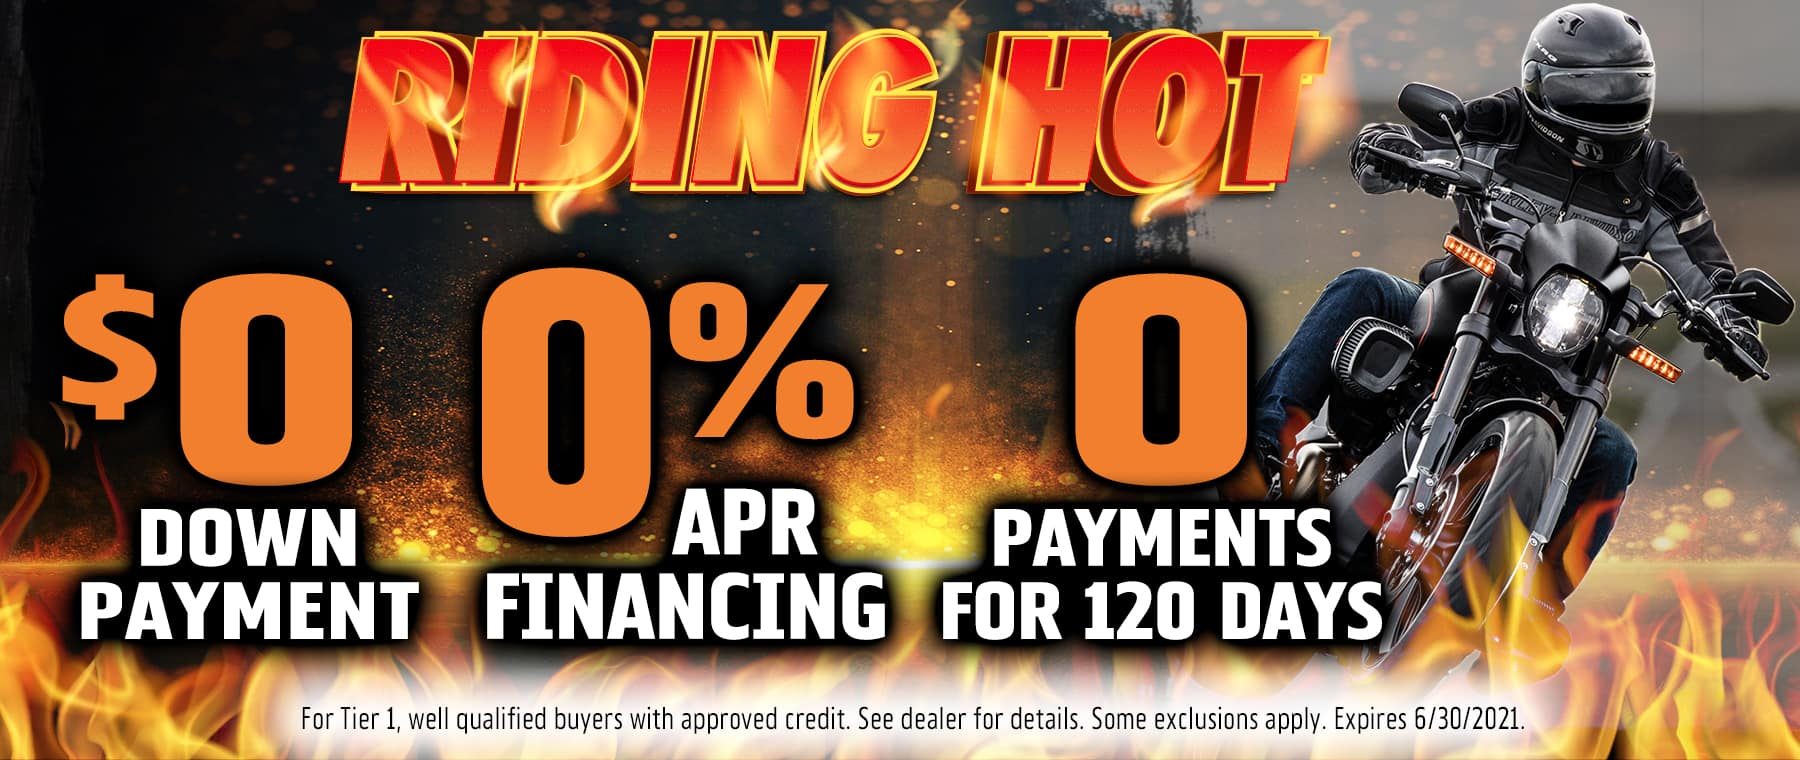 $0 DOWN PAYMENT   0% APR   0 PAYMENTS FOR 120 DAYS